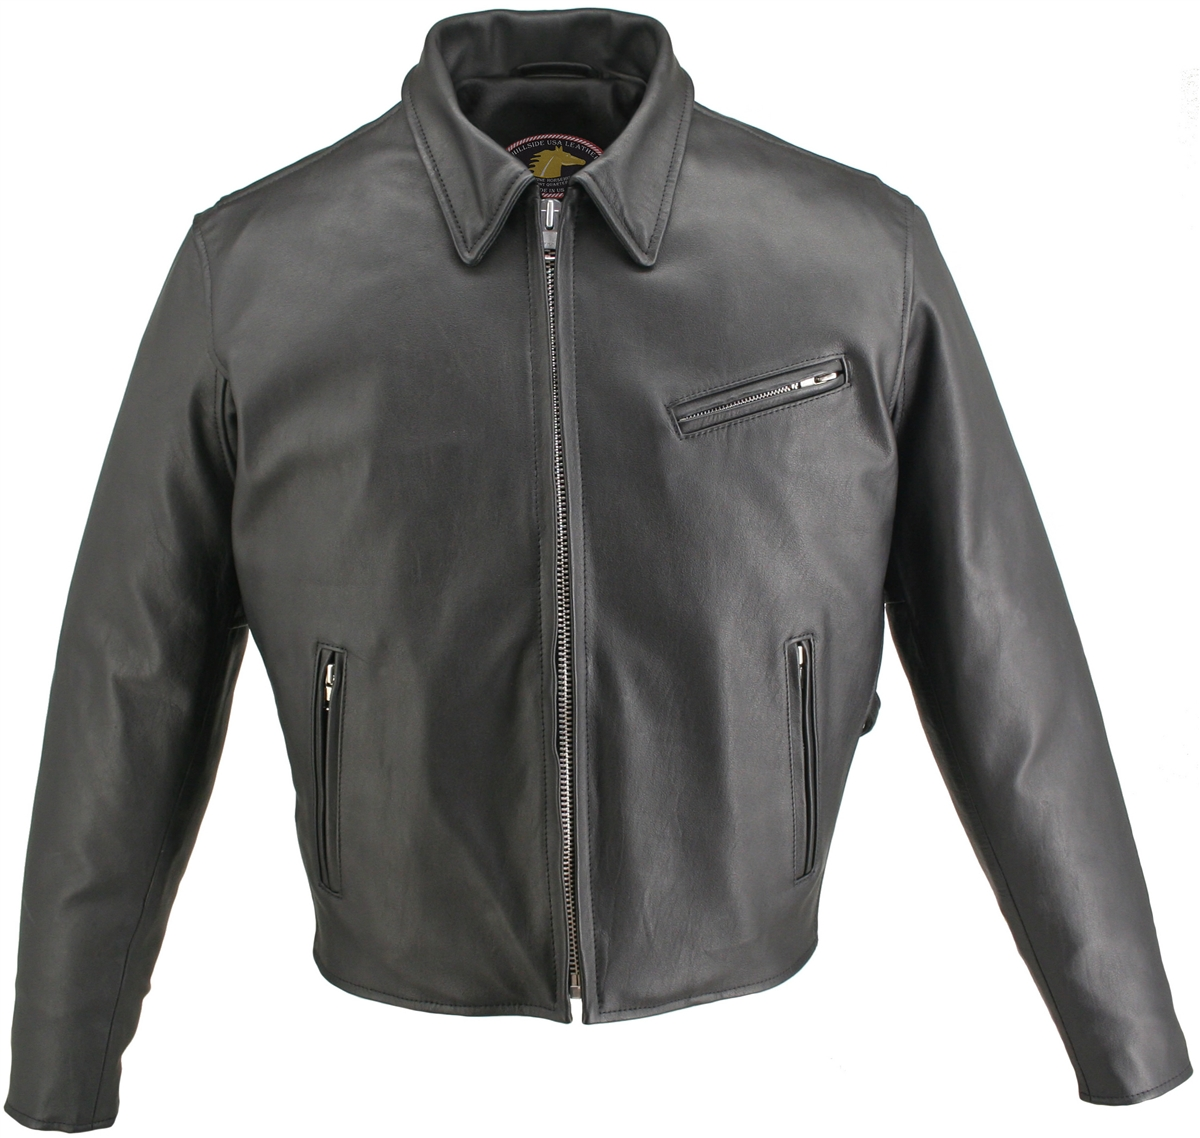 Men's Horsehide Racer Snap Down Collar. With hand stitched by the experts who loves and appreciates 100% US made Products we produce this superb item, crafted with 1.2-1.4mm Genuine Front Quarter Horsehide. Snap-down shirt collar, removable Full Sleeve Th